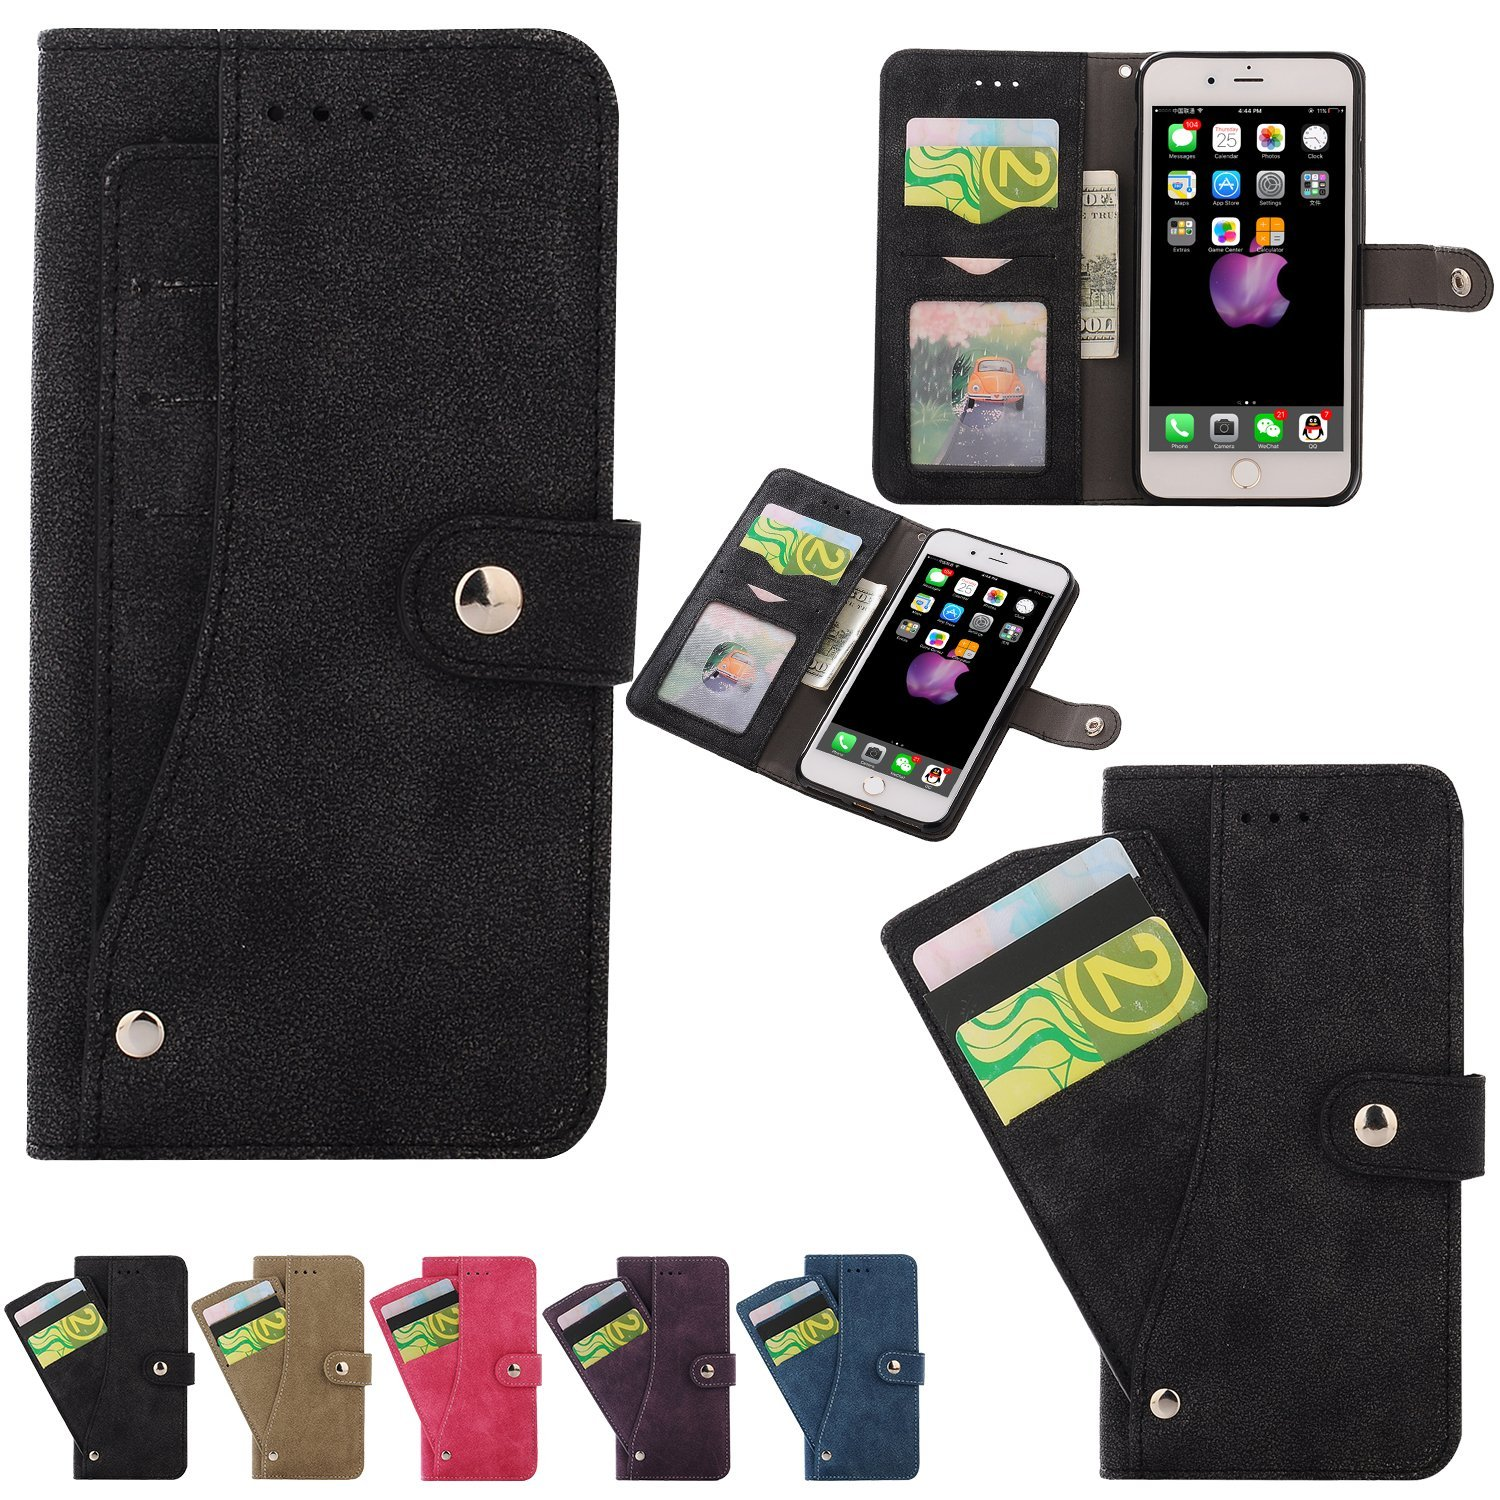 iPhone 7 Plus Case, LONTECT PU Leather Flip Wallet Case Cover Stand with 6 Card Slots Holder for Apple iPhone 7 Plus - Black